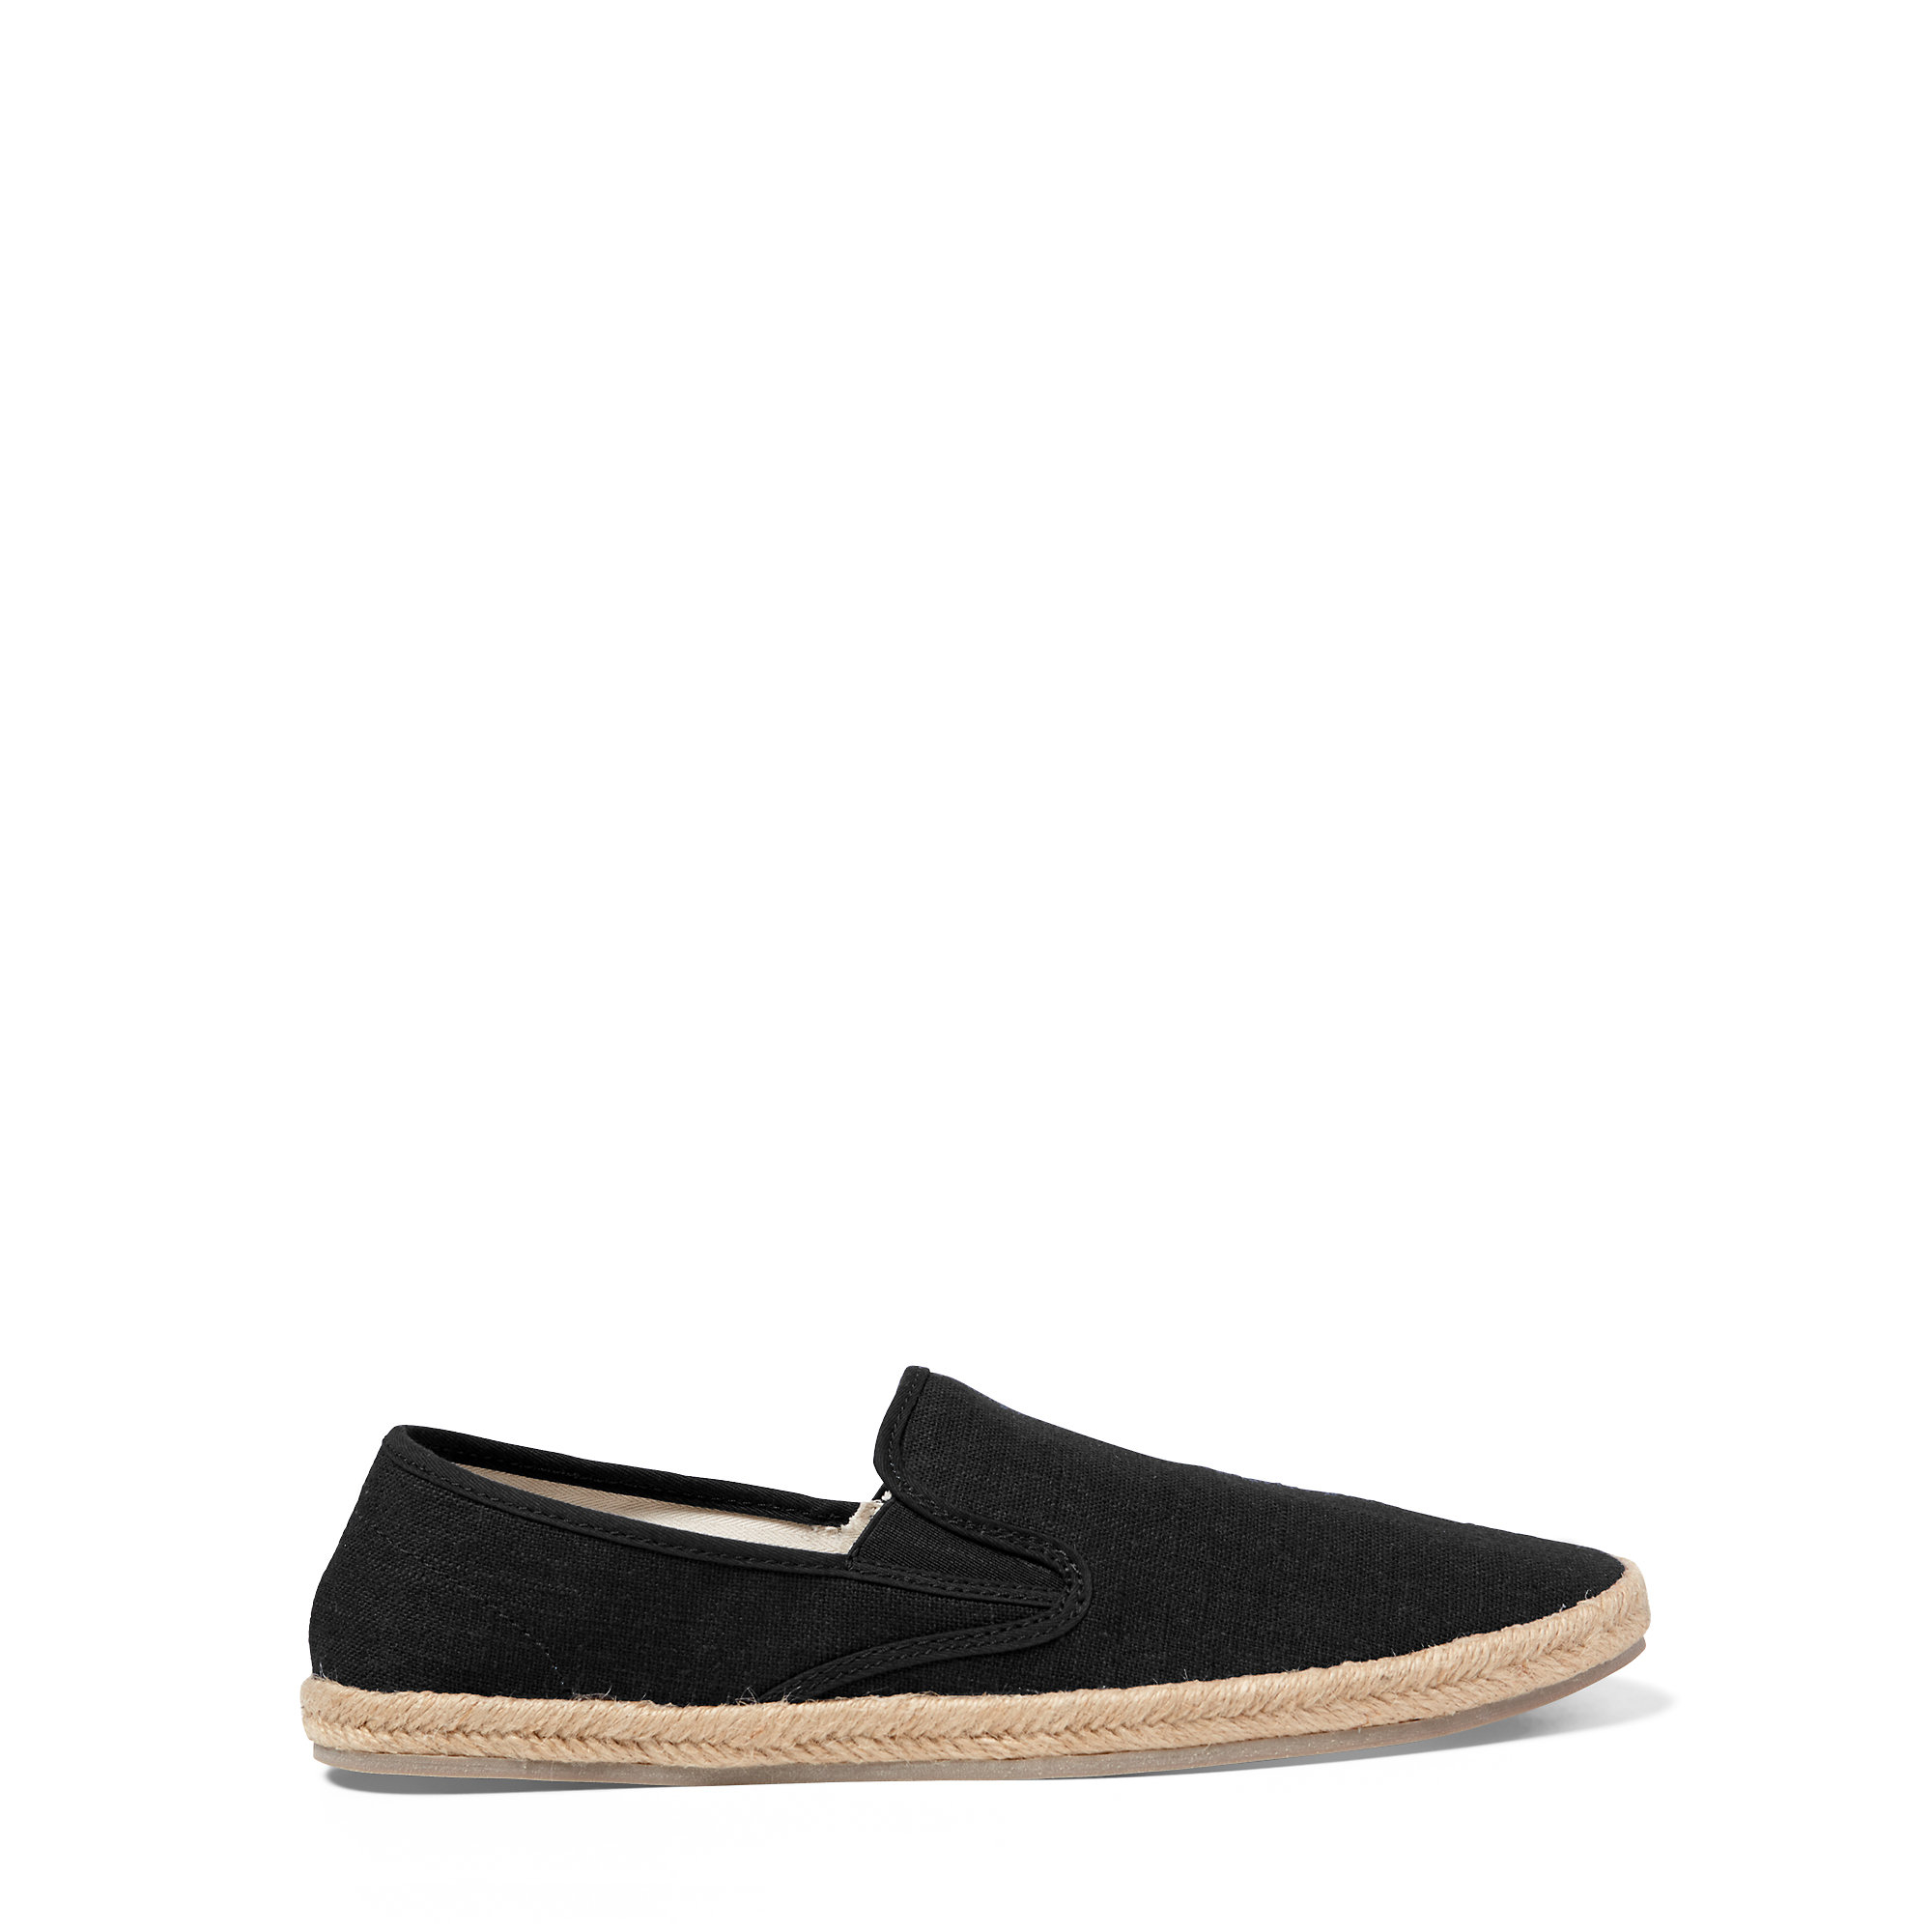 polo ralph lauren swittle linen blend espadrille in black for men lyst. Black Bedroom Furniture Sets. Home Design Ideas